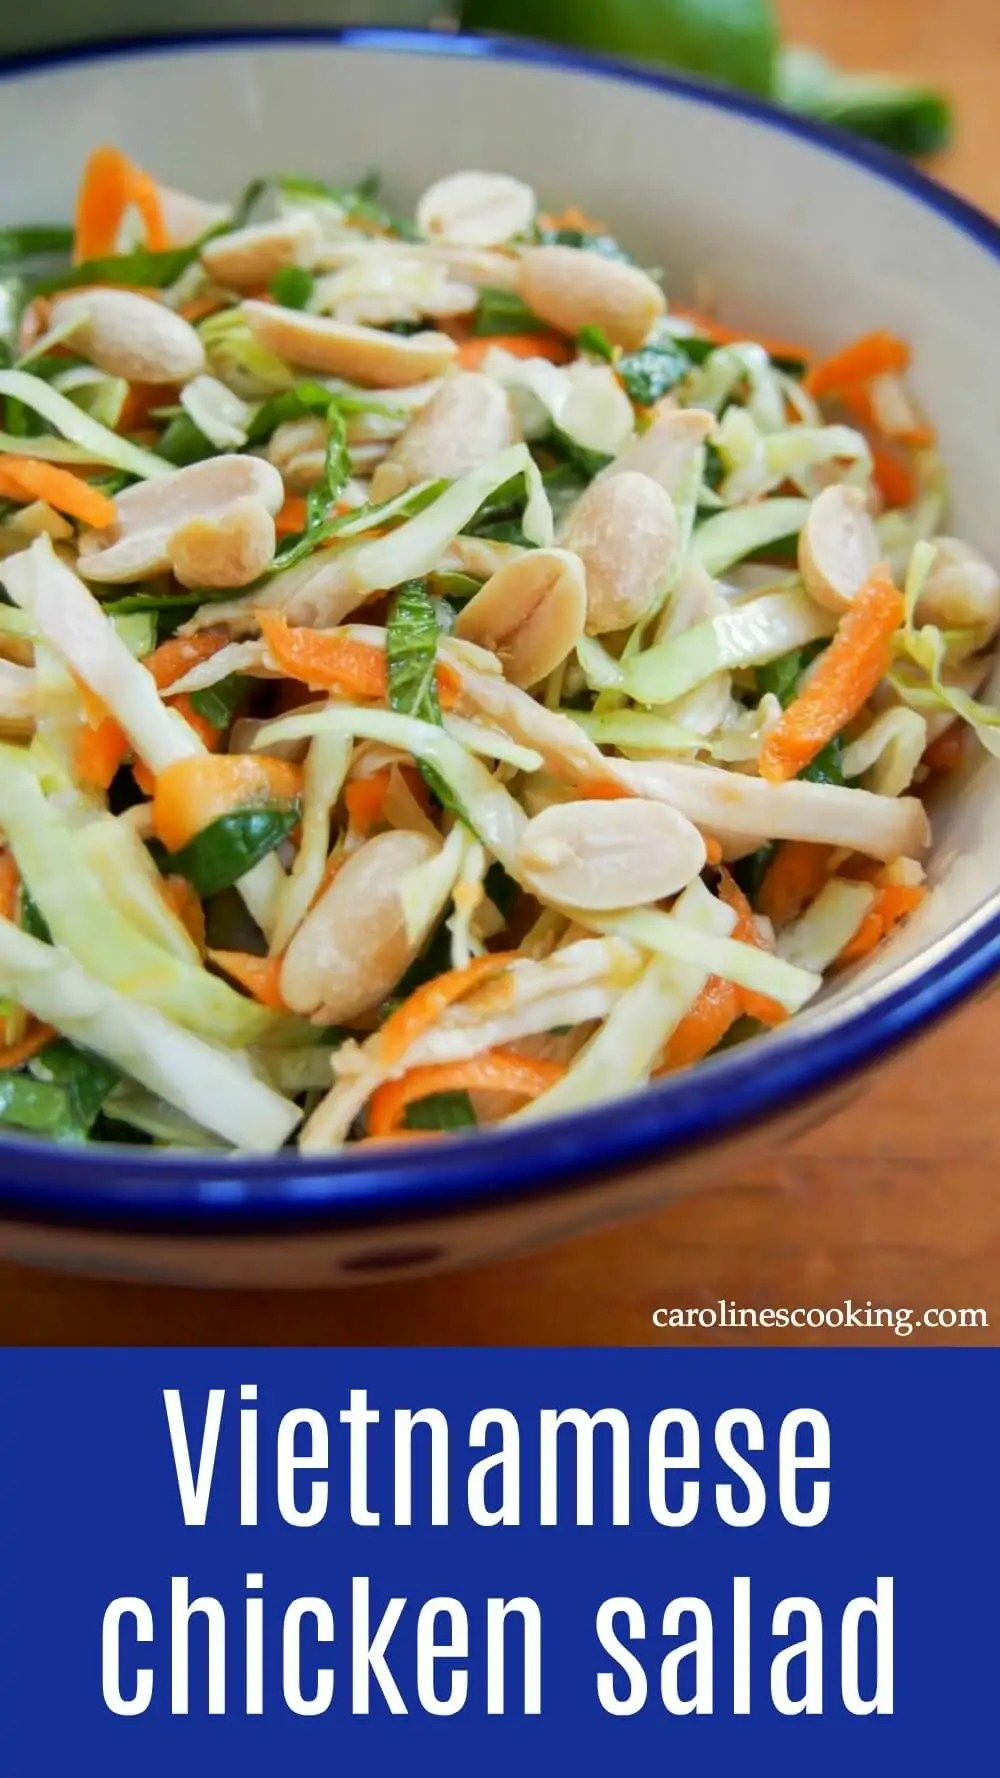 Vietnamese chicken salad is simple but delicious - a great way to enjoy leftover chicken (or turkey) alongside vegetables, mint and a punchy Asian dressing. It's perfect for your lunchbox or to take on a picnic too. #chicken #salad #thanksgivingleftovers